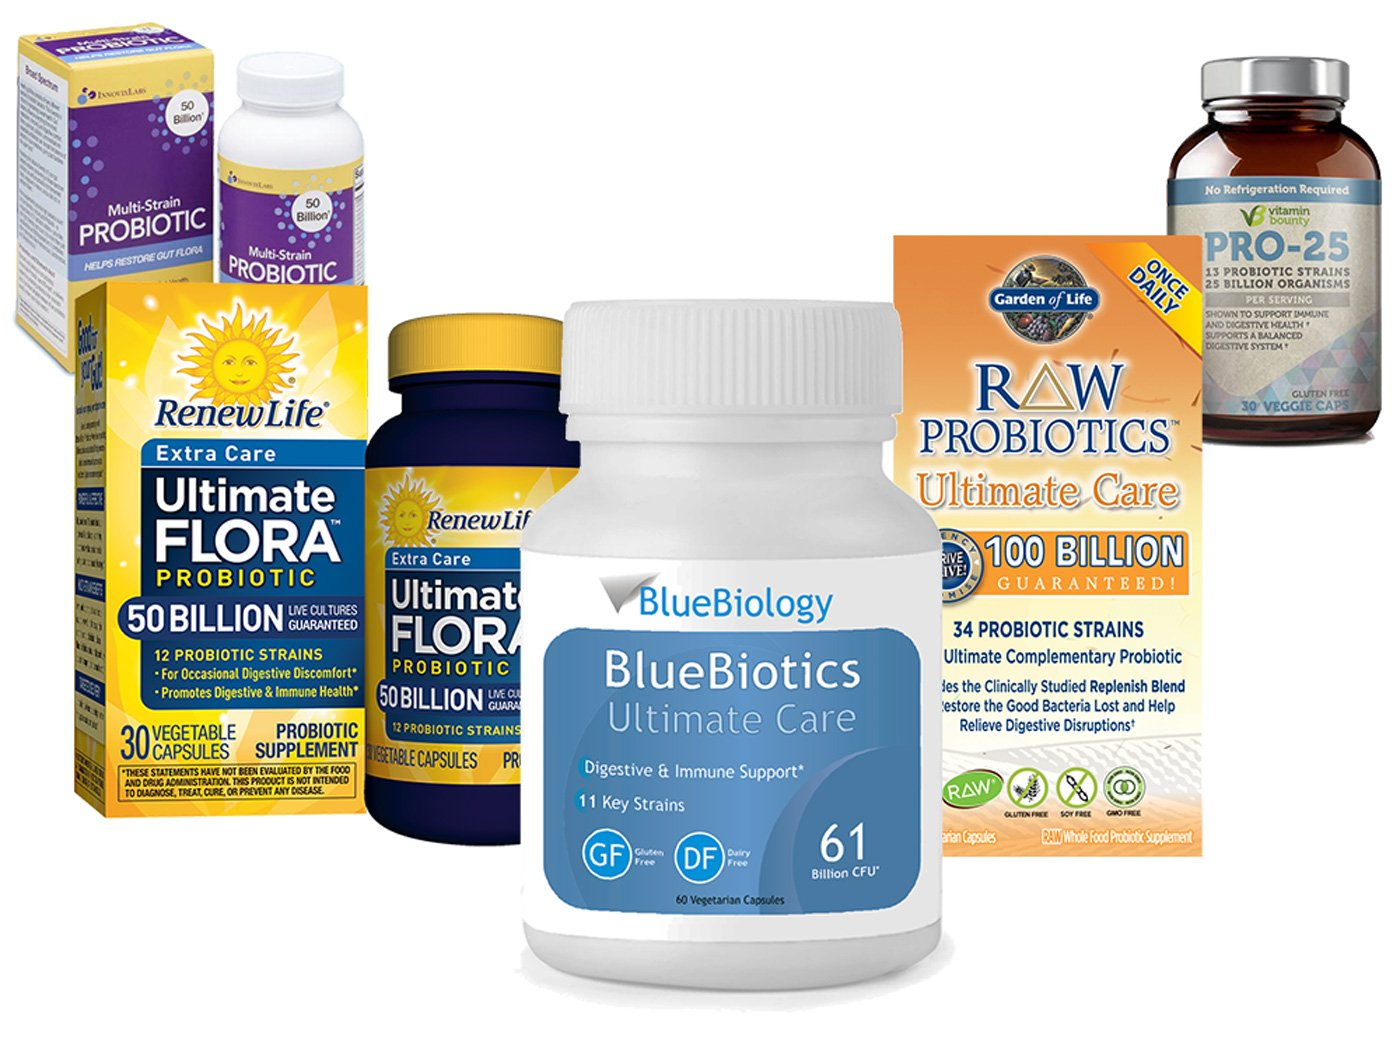 Image of the 5 best probiotic supplement products